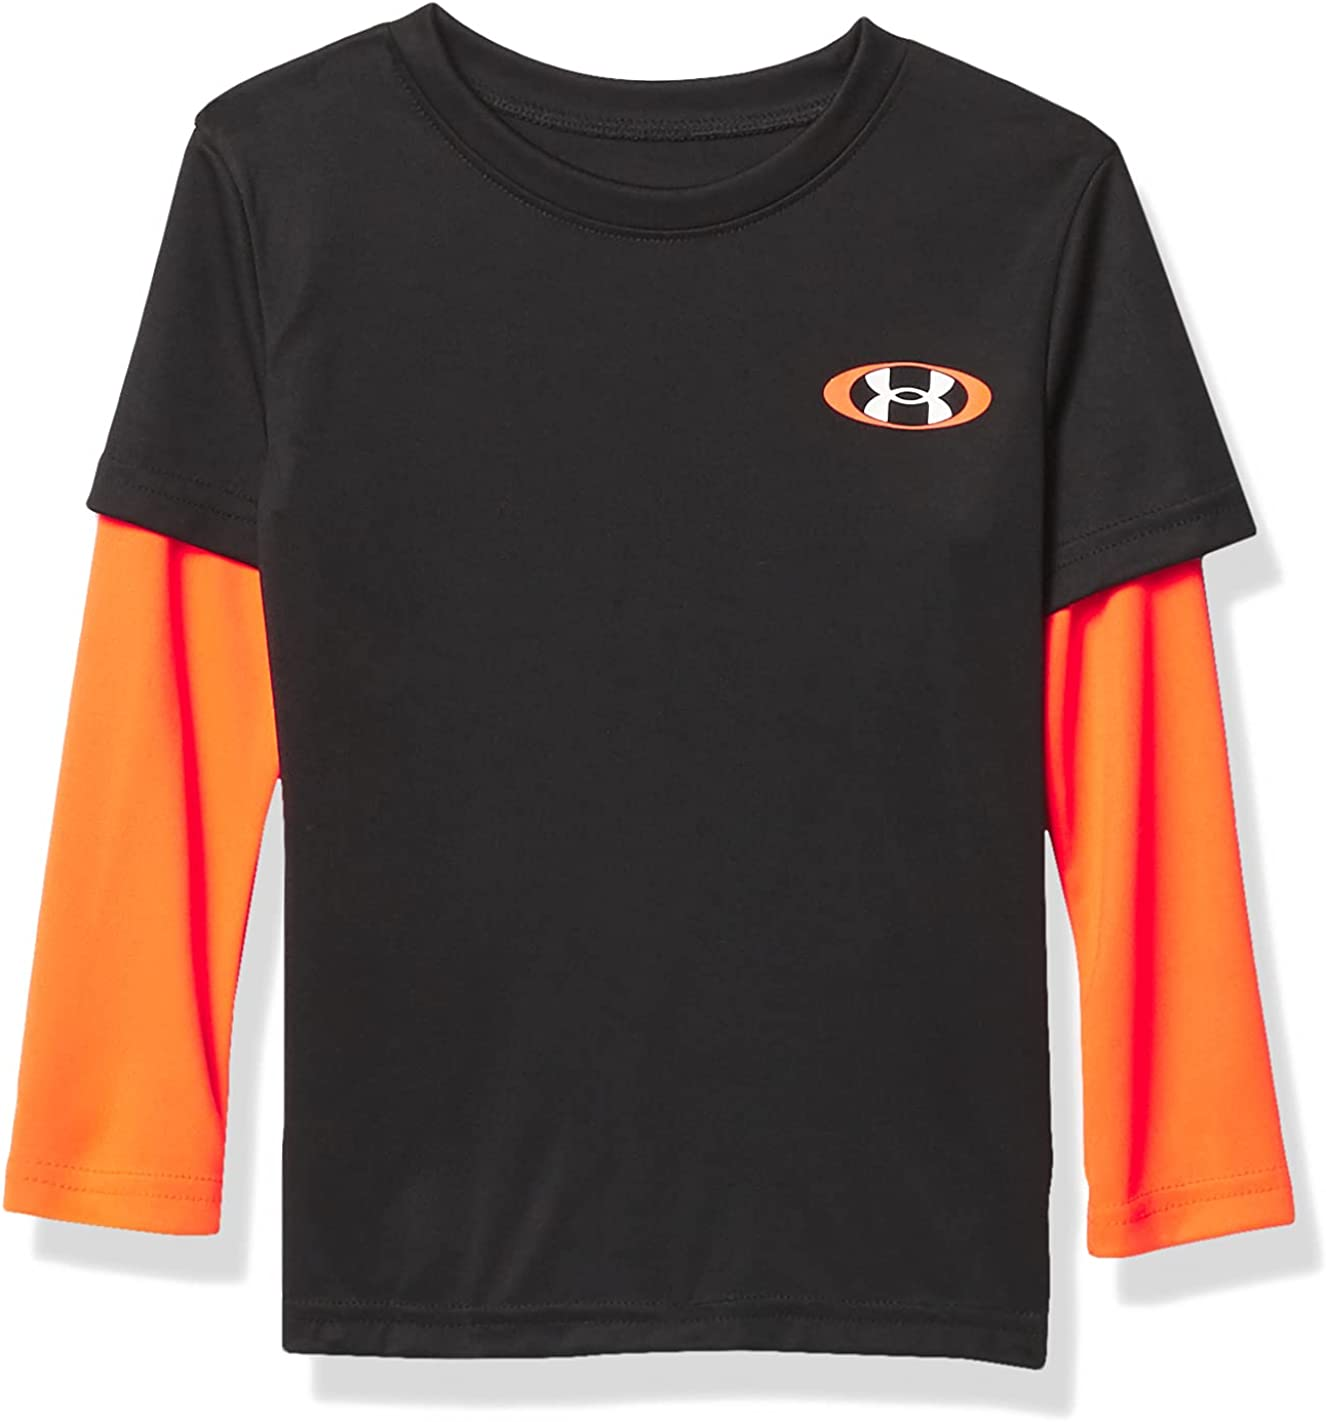 Regular discount Under 25% OFF Armour Boys' Graphic Sleeve Long Tee